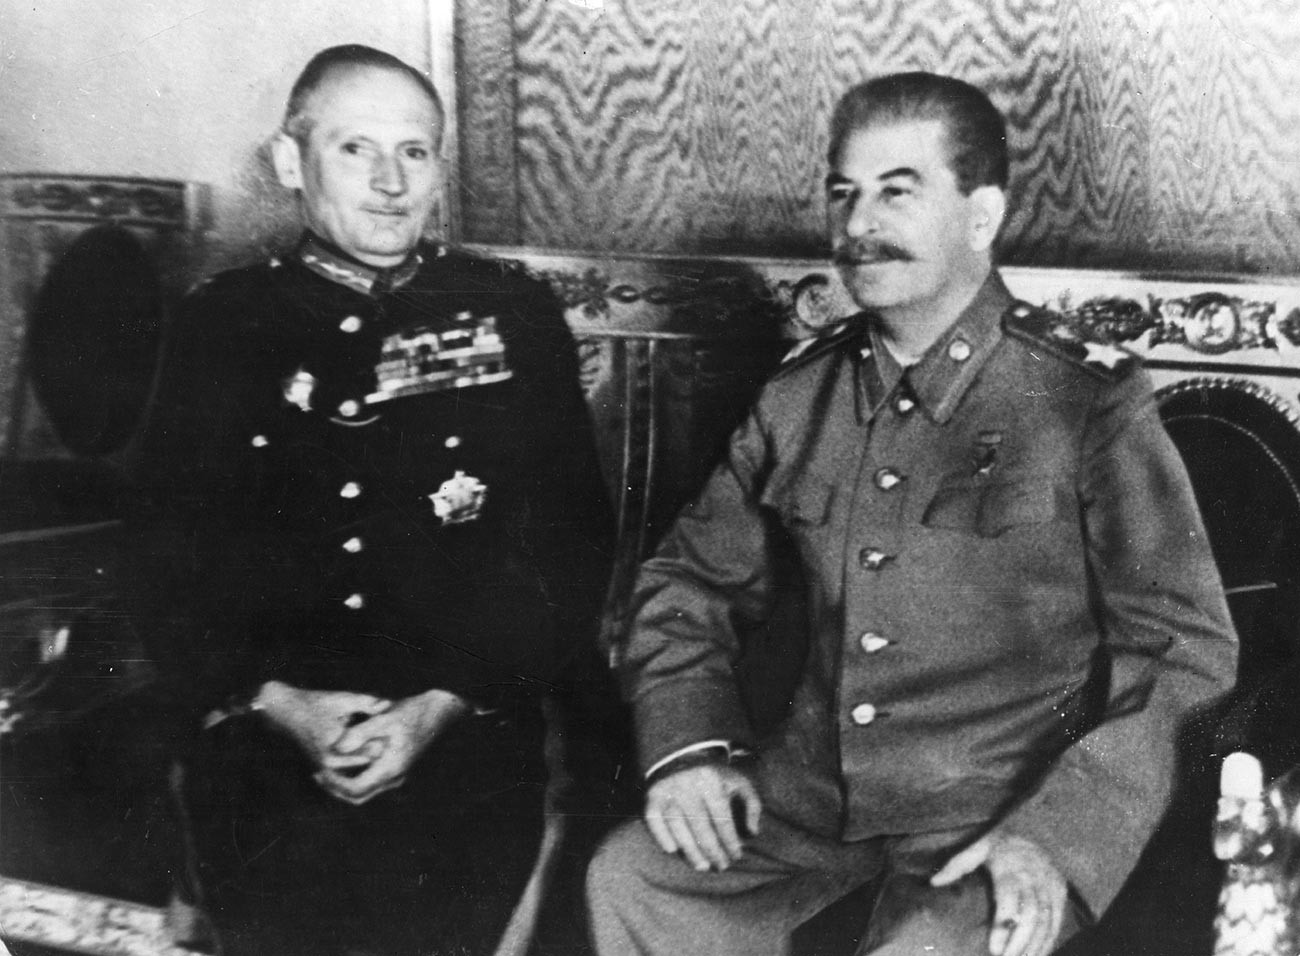 English soldier Field Marshal Bernard L. Montgomery (wearing his Order of Victory) and Joseph Stalin